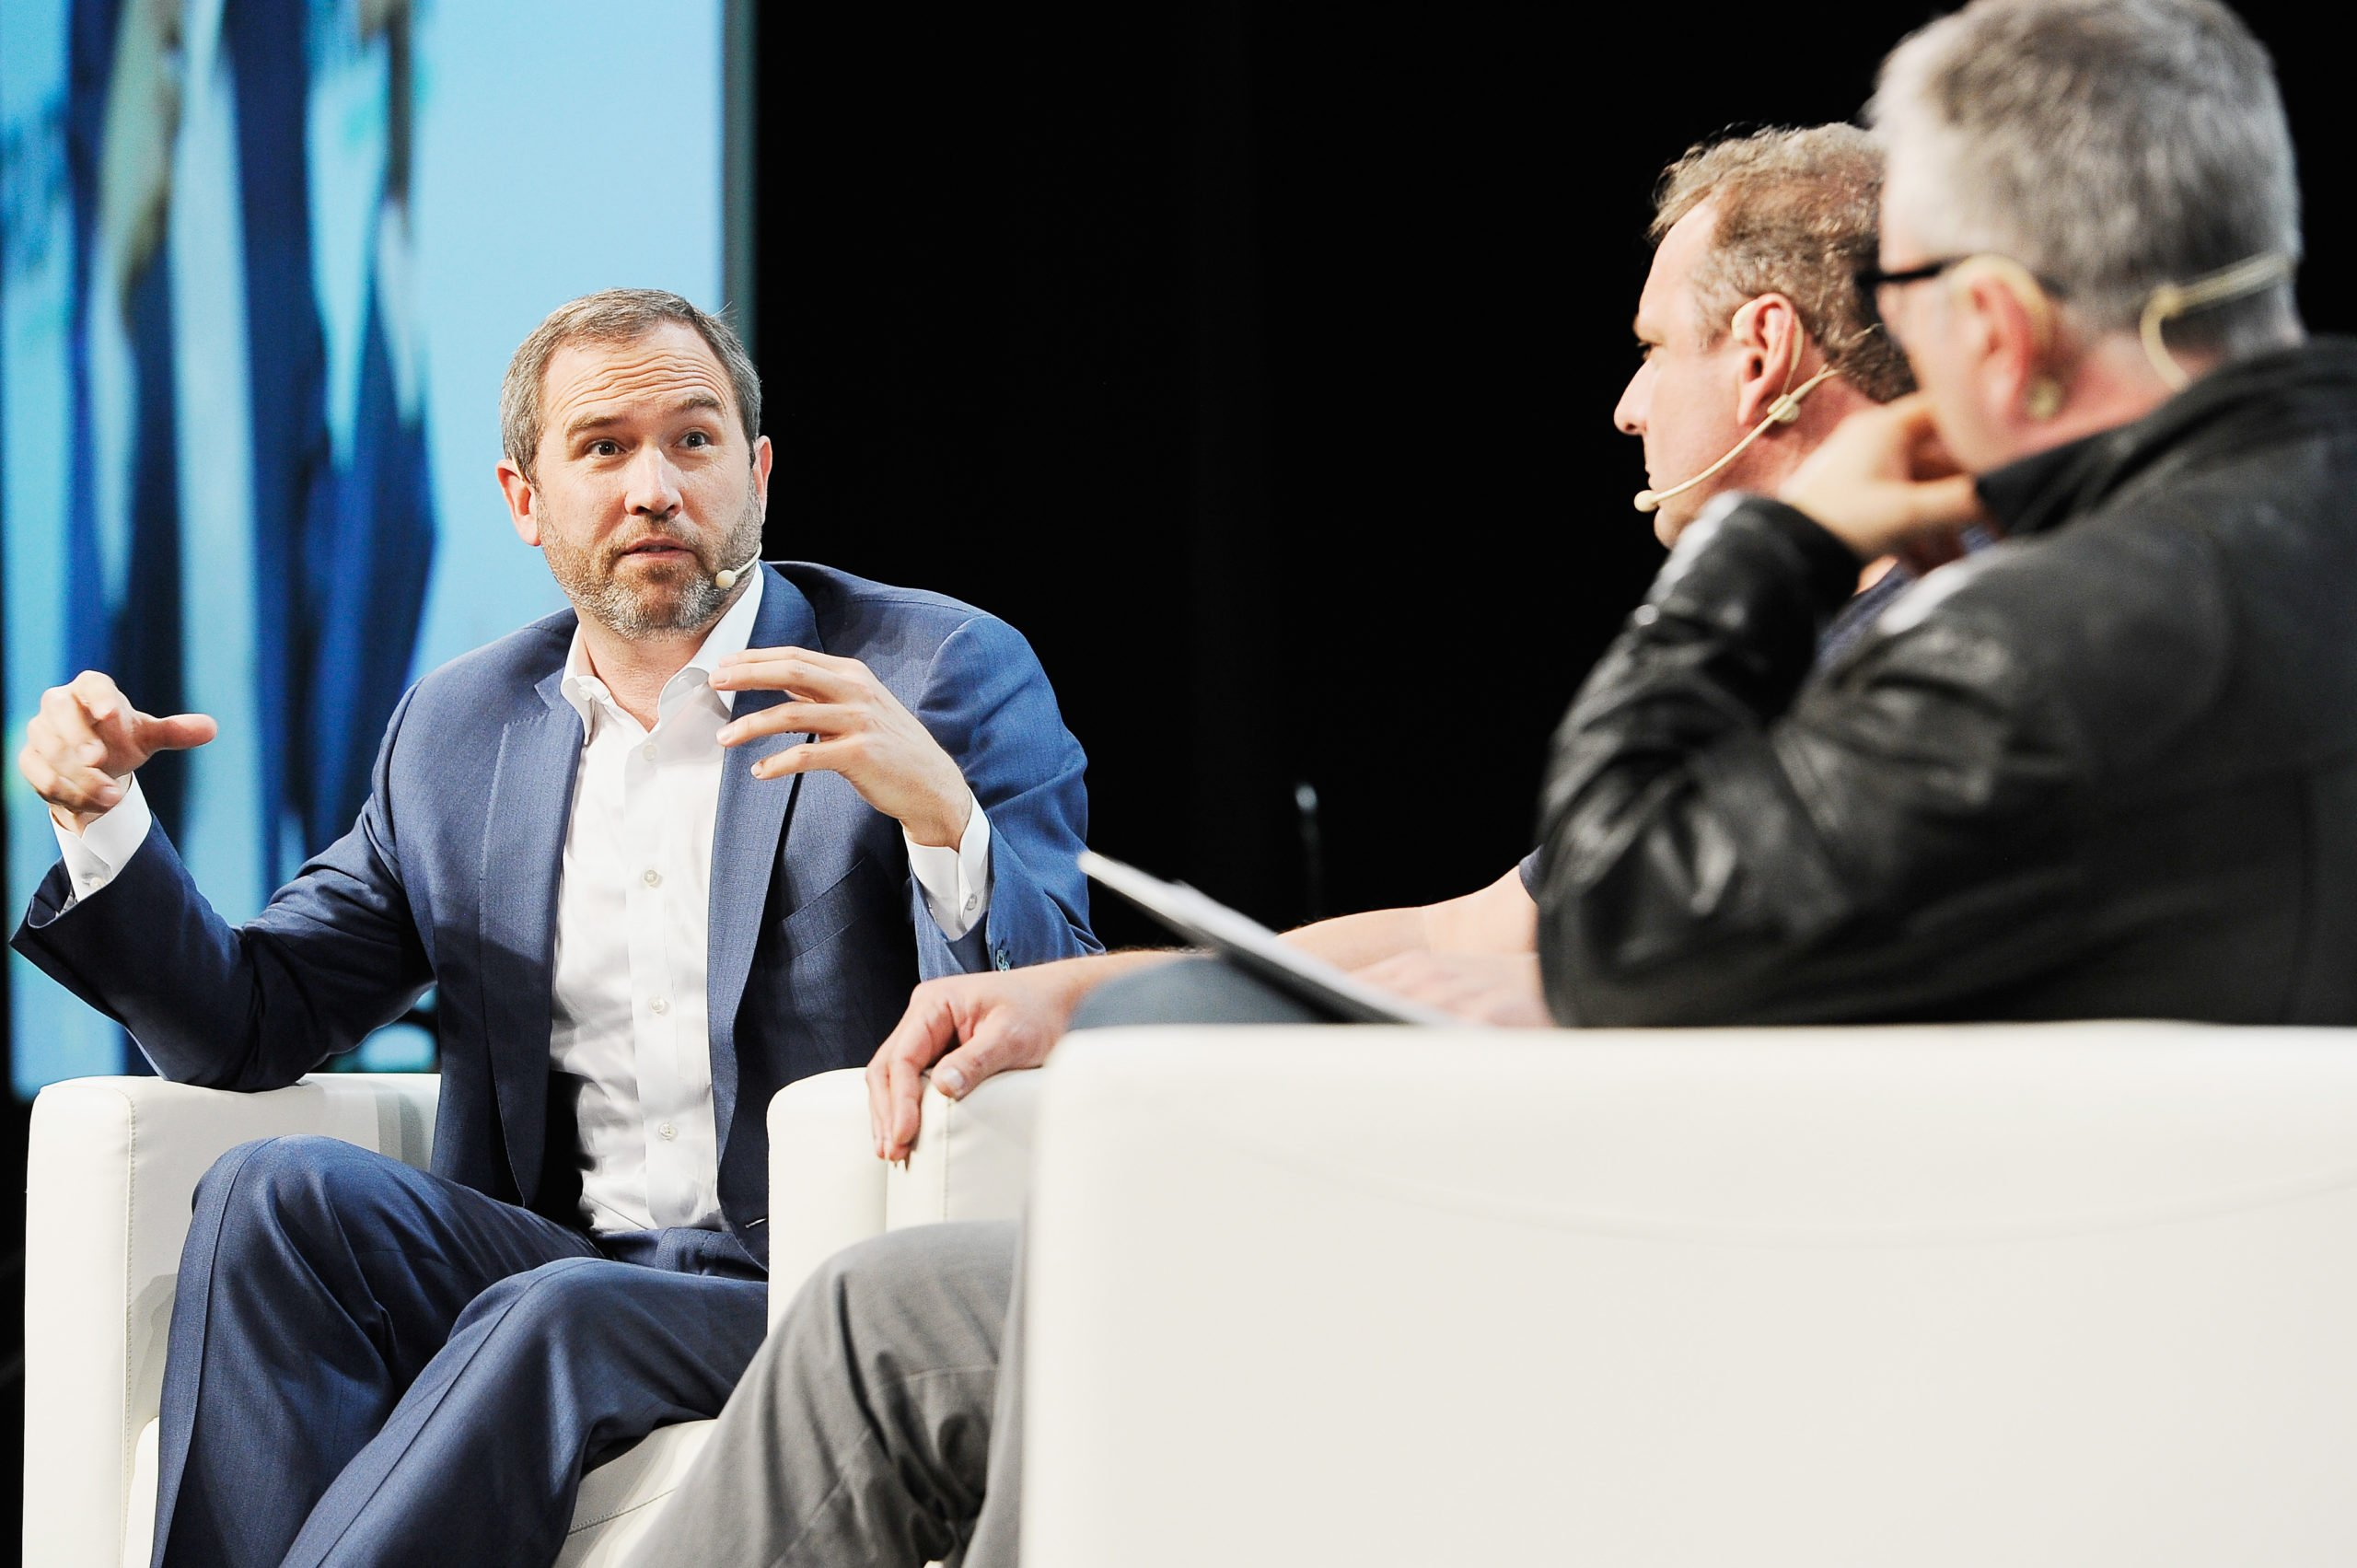 Ripple CEO Brad Garlinghouse, Arrington XRP Capital Partner Michael Arrington, and moderator Mike Butcher speak onstage during Day 1 of TechCrunch Disrupt SF 2018 at Moscone Center on September 5, 2018 in San Francisco, California. (Photo by Steve Jennings/Getty Images for TechCrunch)